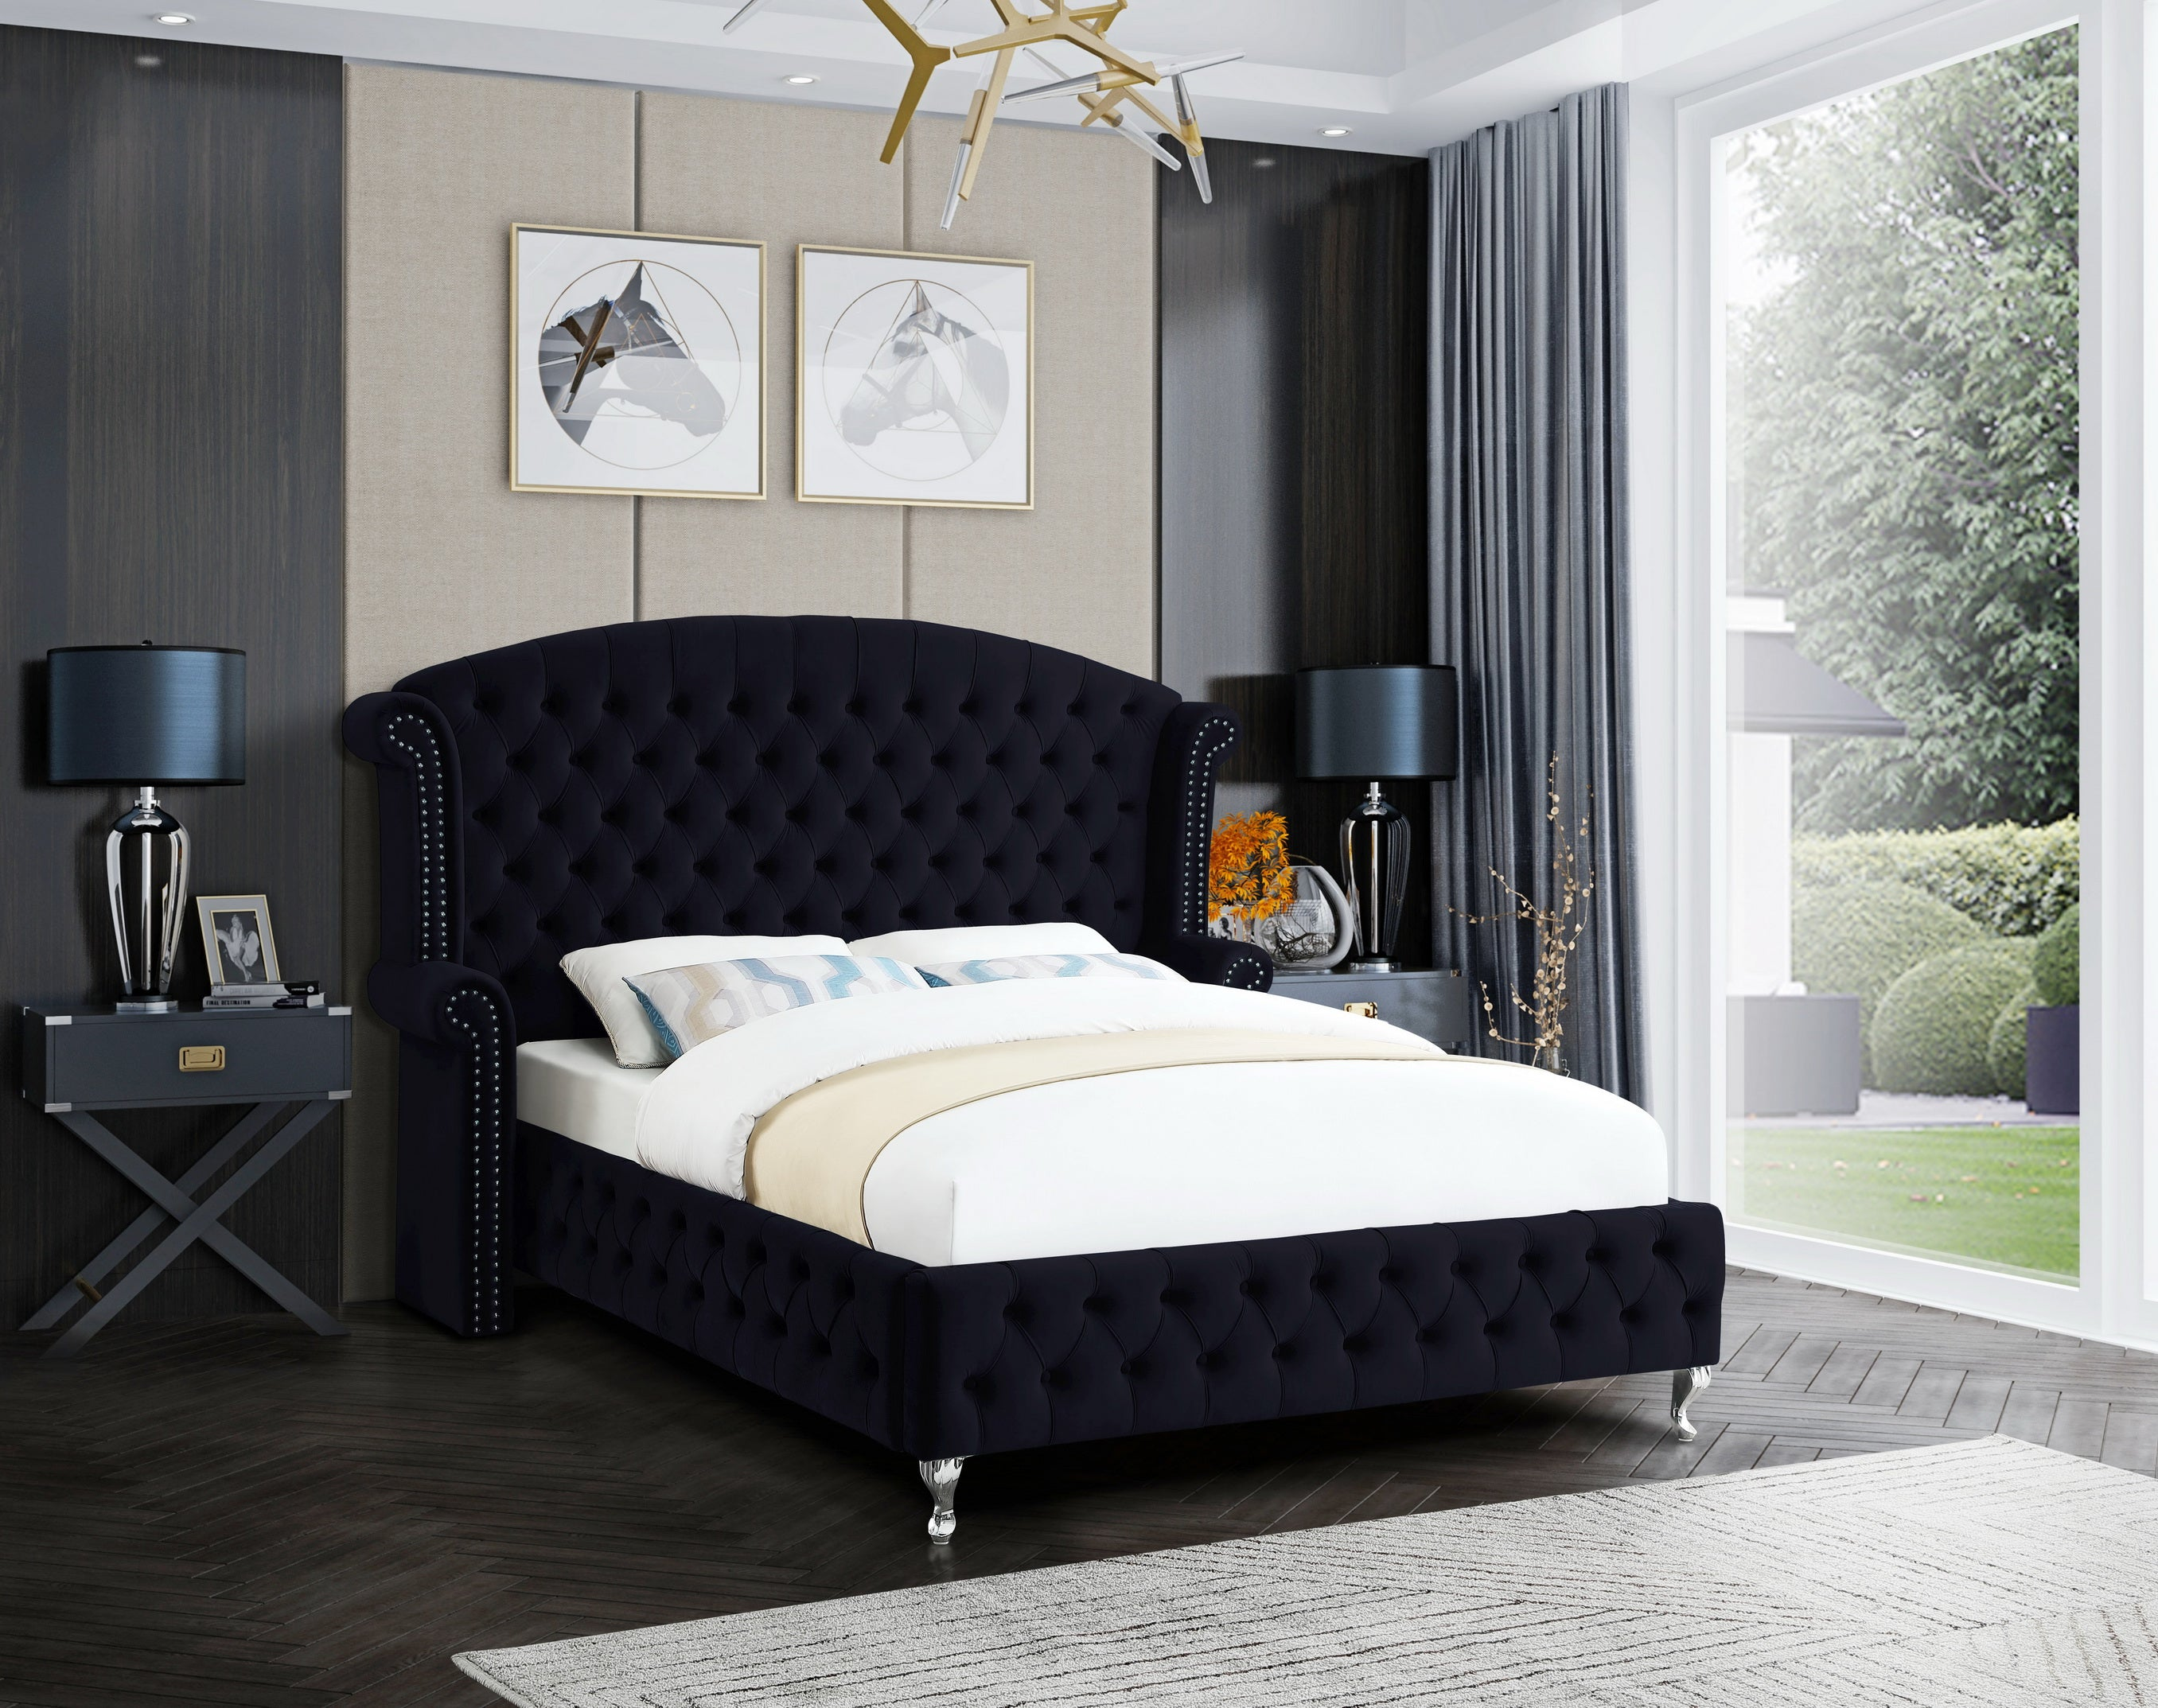 Black Upholstered Bed Pacific Imports Inc